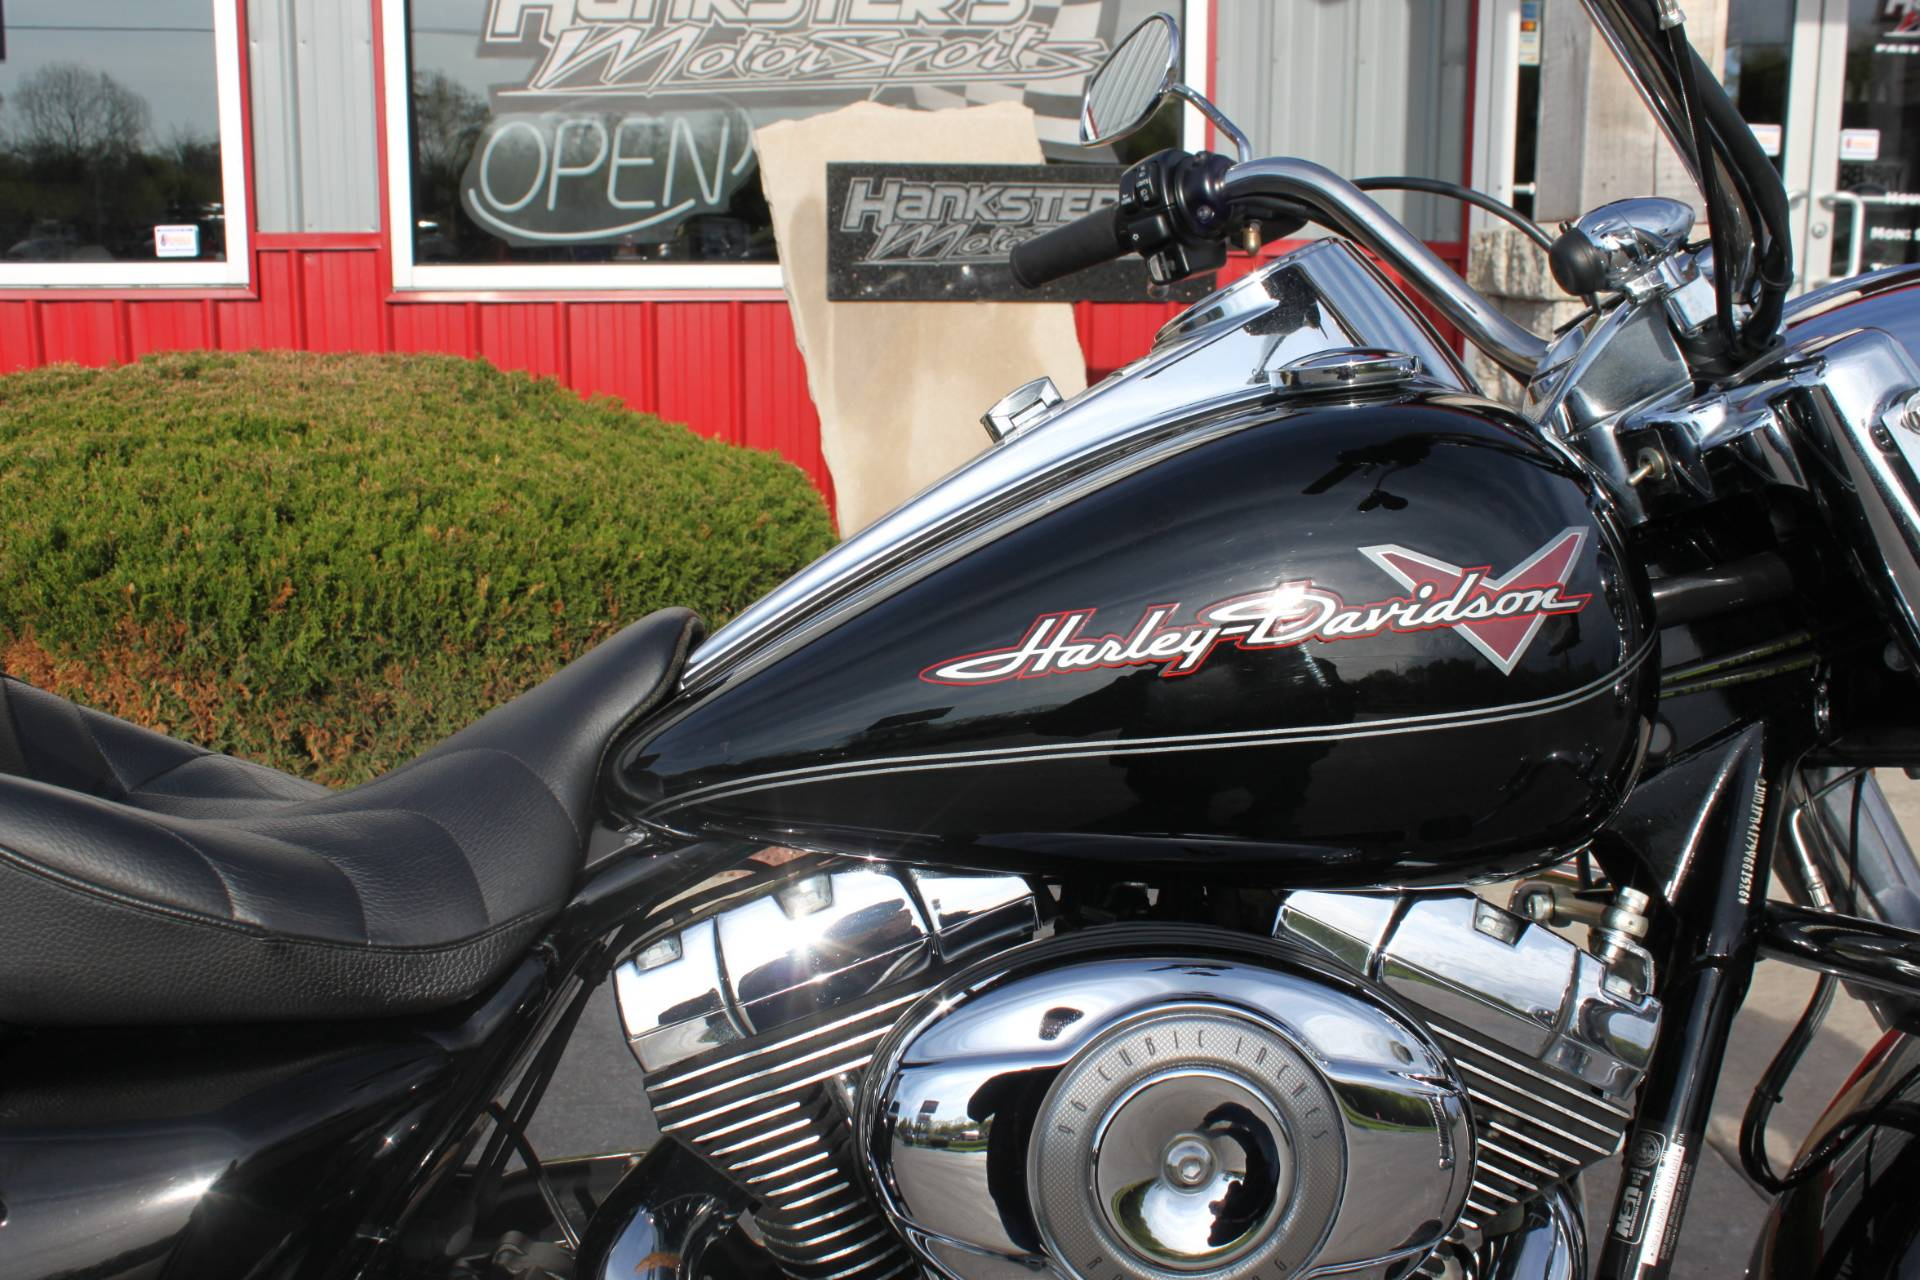 2009 Harley-Davidson Road King 10